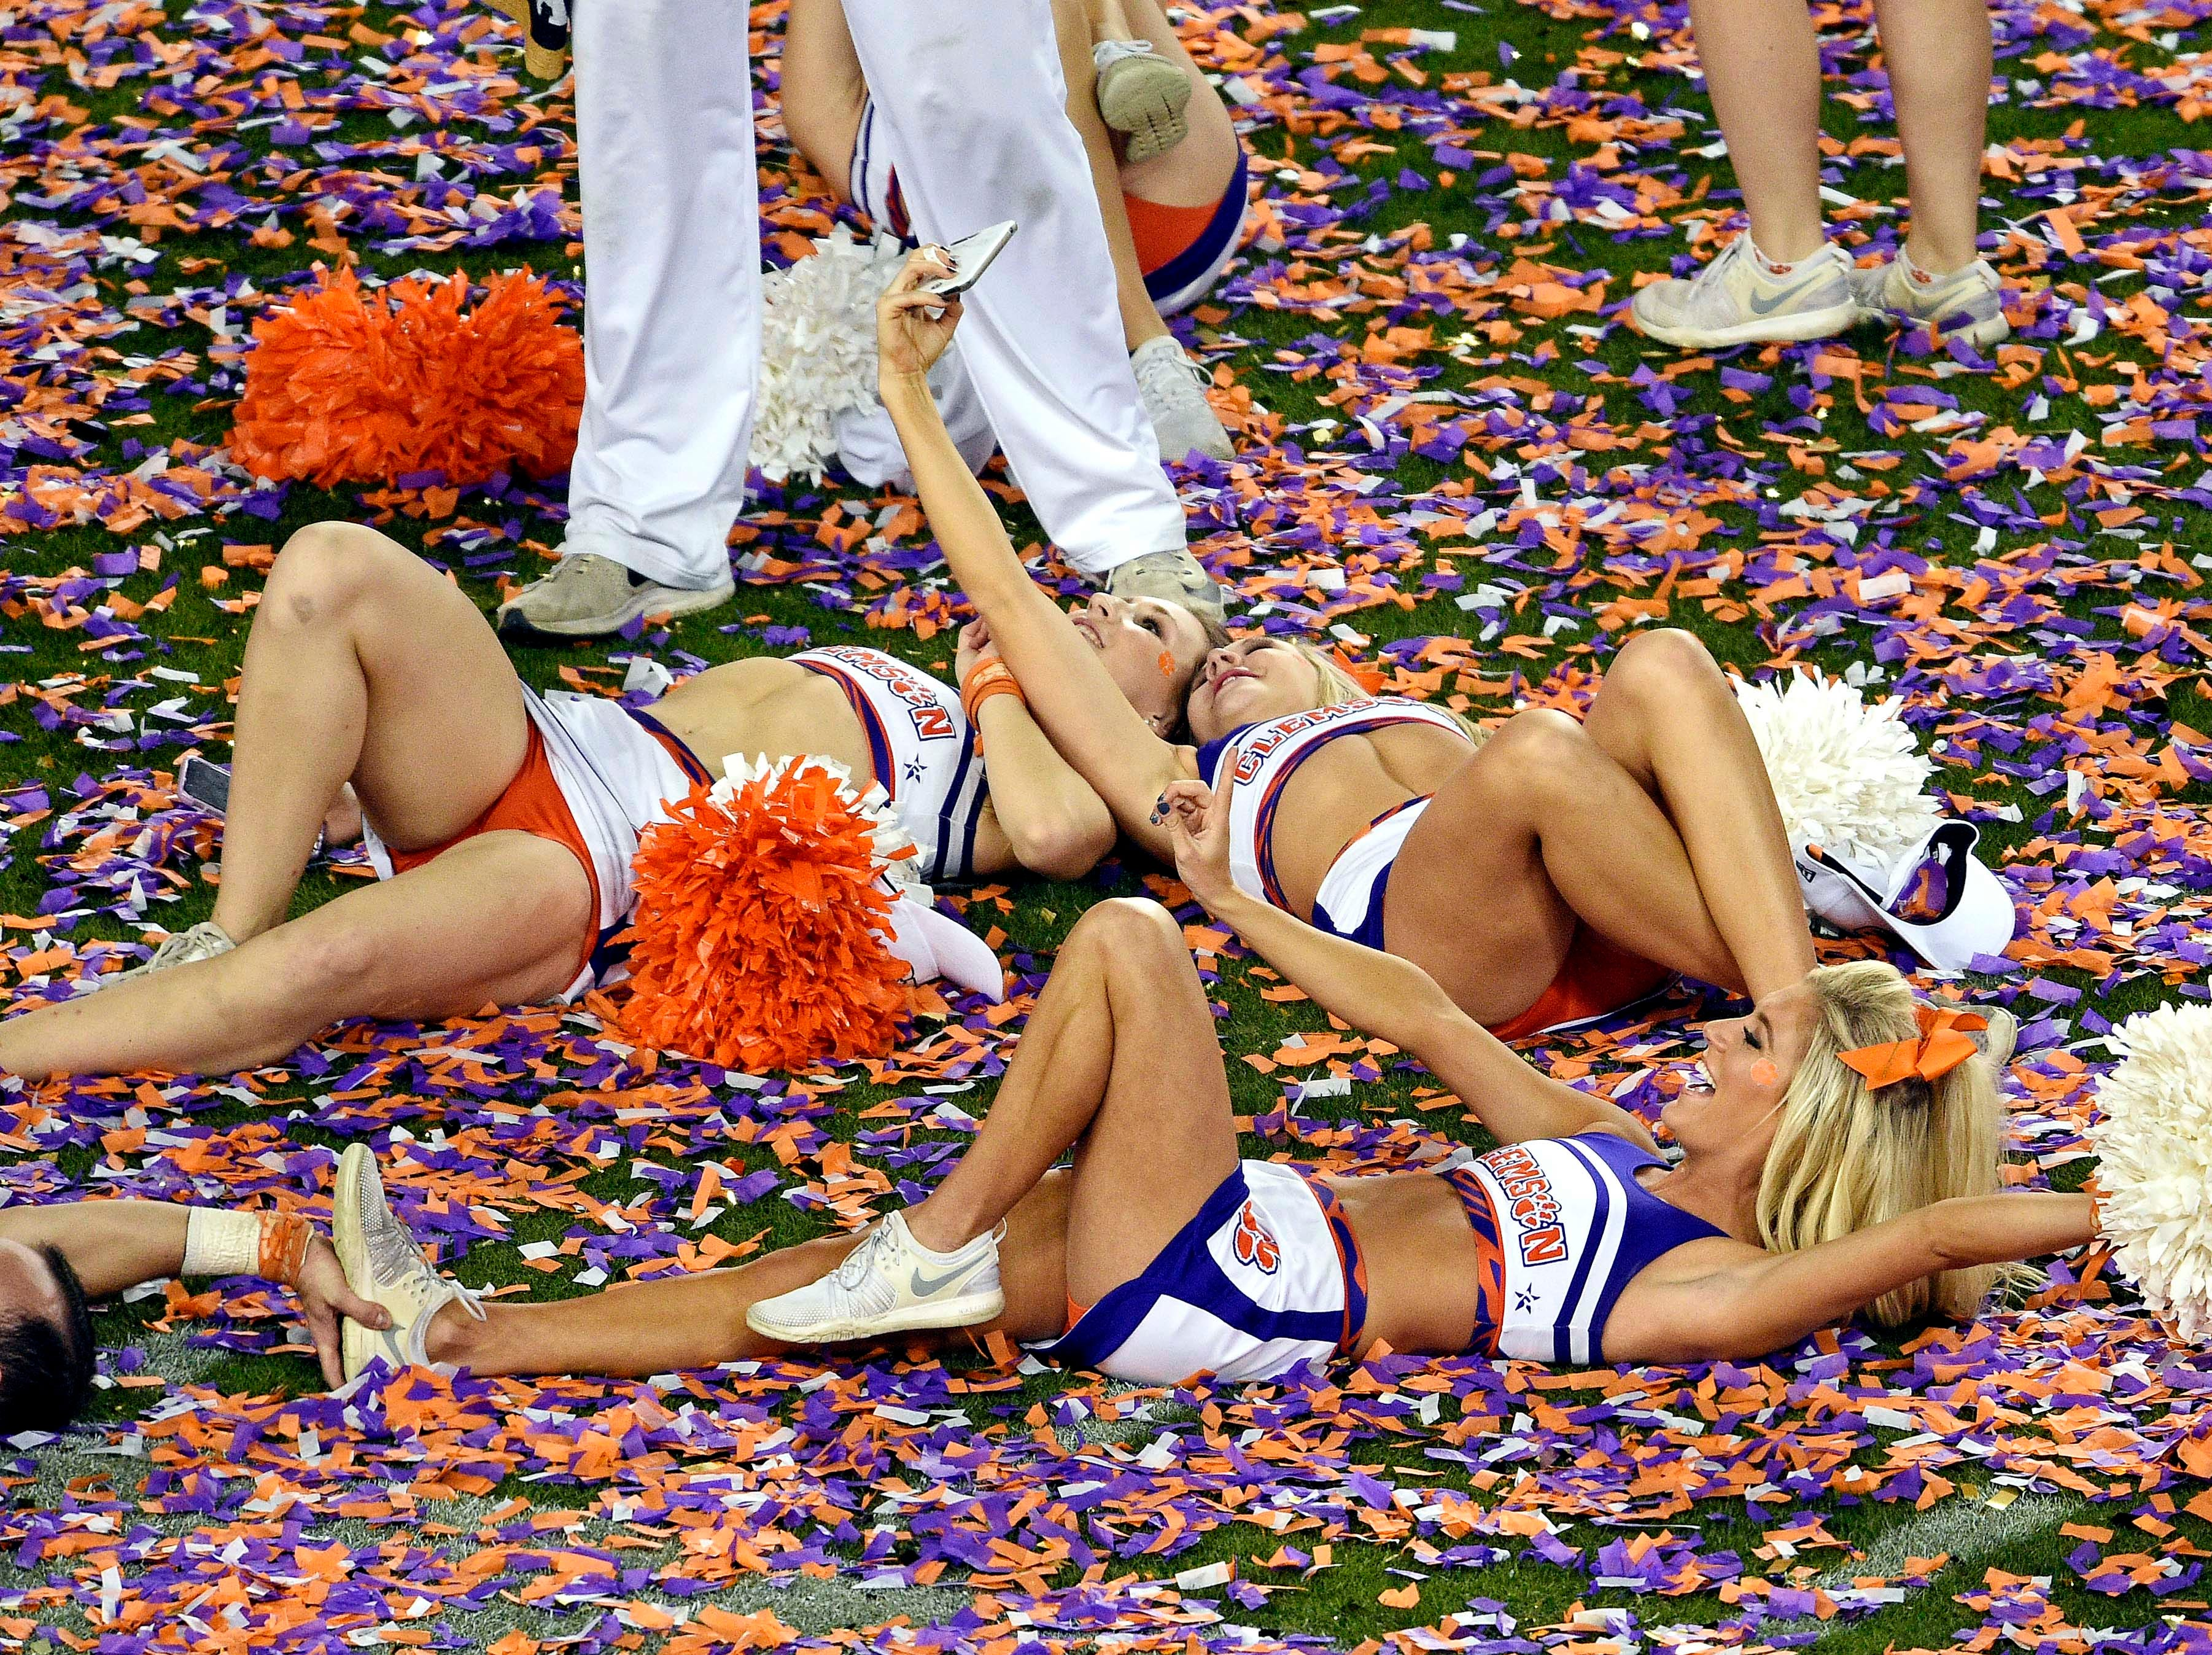 Clemson cheerleaders celebrate on the field after the game.